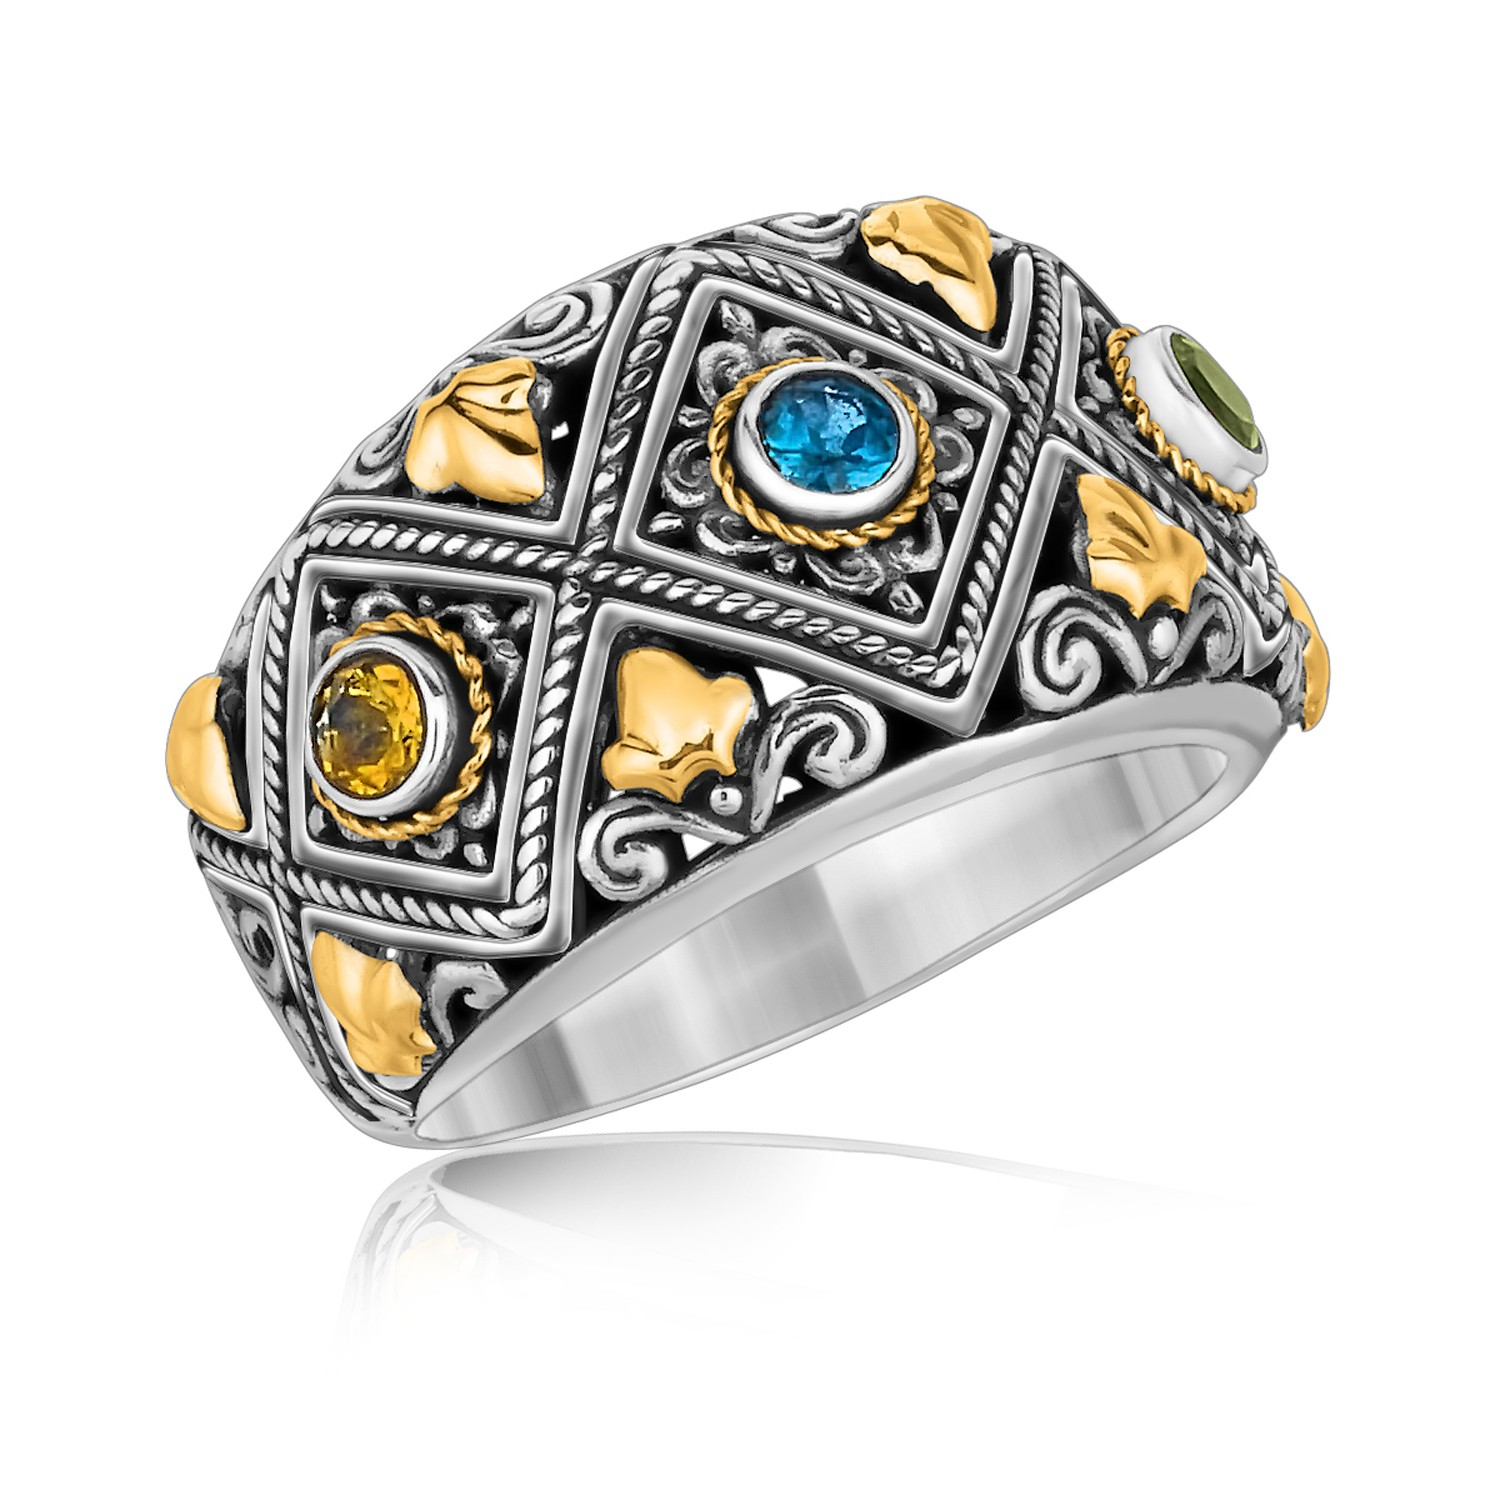 Myriam's Boutique 18K Yellow Gold and Sterling Silver Ornate Ring with Multi Gemstone Accents